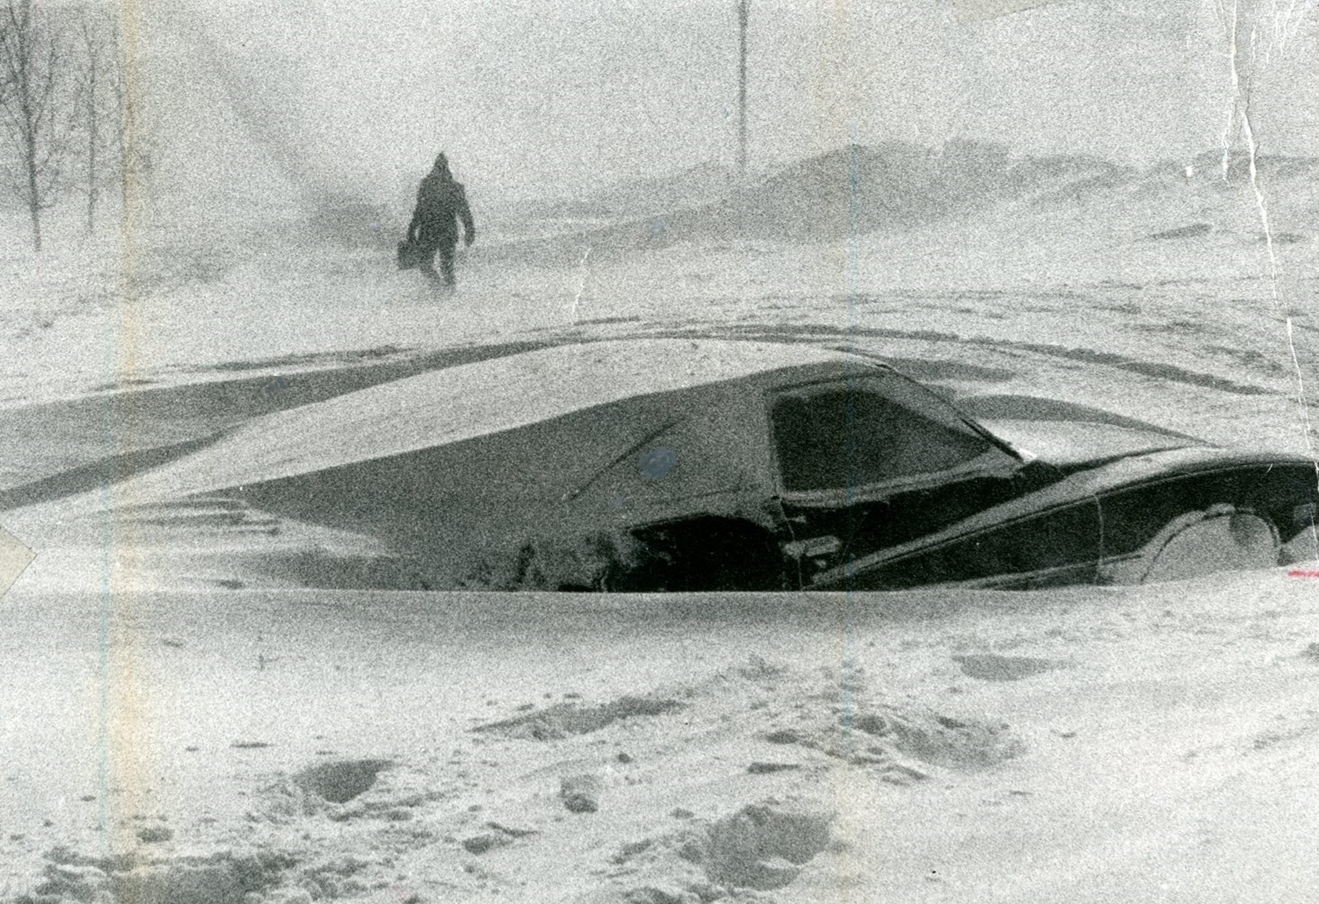 The Blizzard of '77.